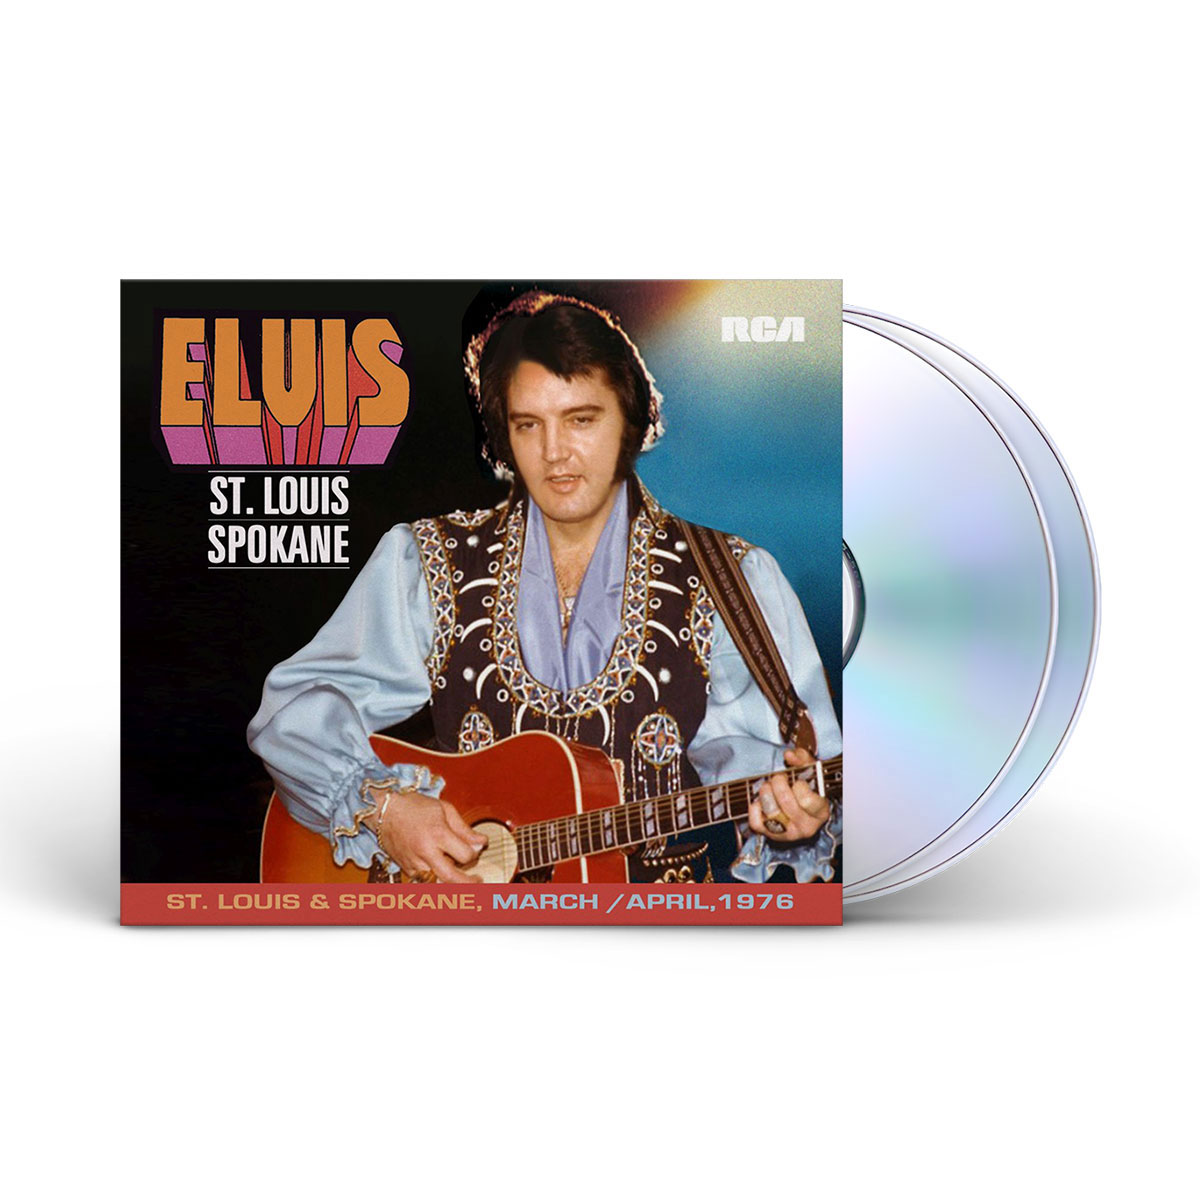 Elvis: St. Louis & Spokane FTD (2-disc) CD